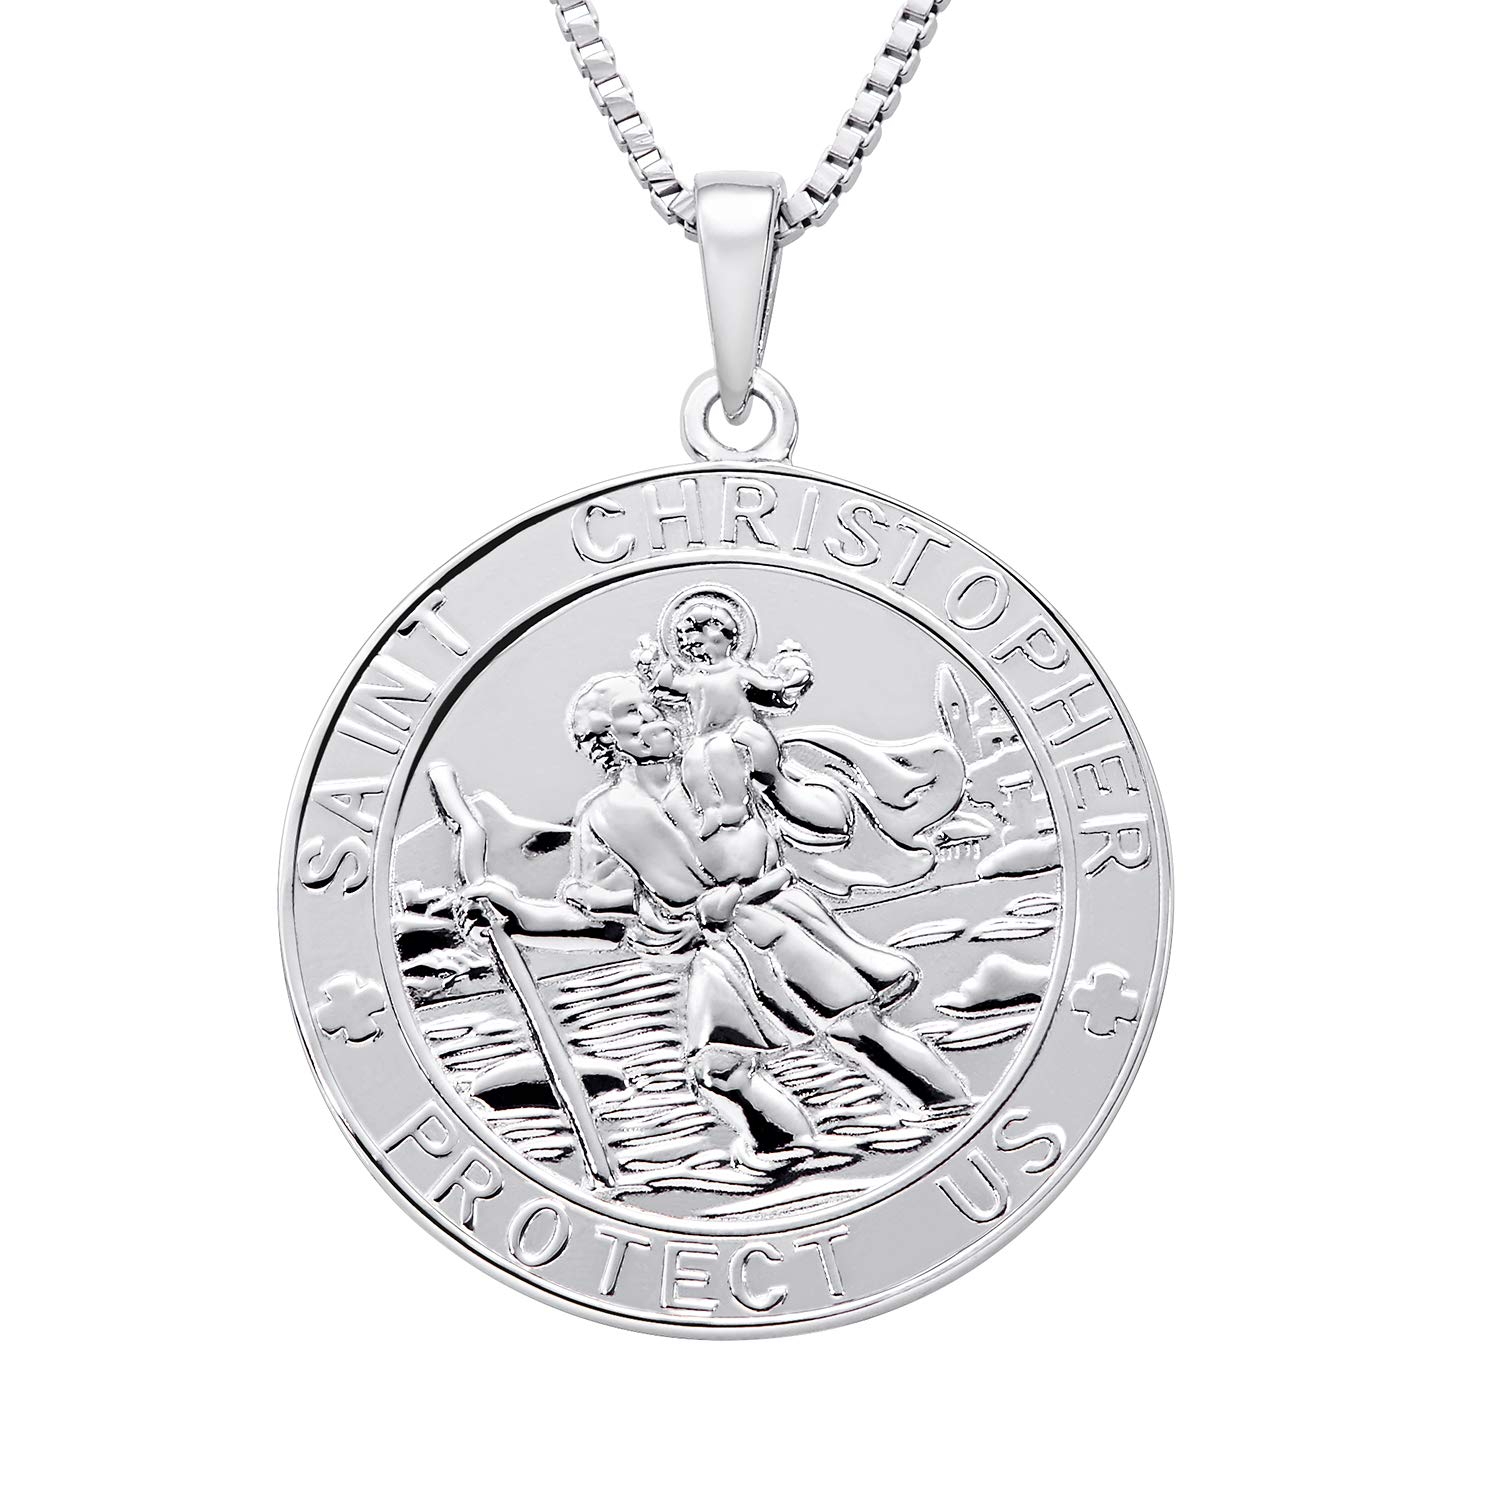 aaab9d3e1fa Farjary Jewelry 925 Silver Medium St. Christopher Round Coin Pendant With  18 Inch Necklace For Her Him: Amazon.co.uk: Jewellery